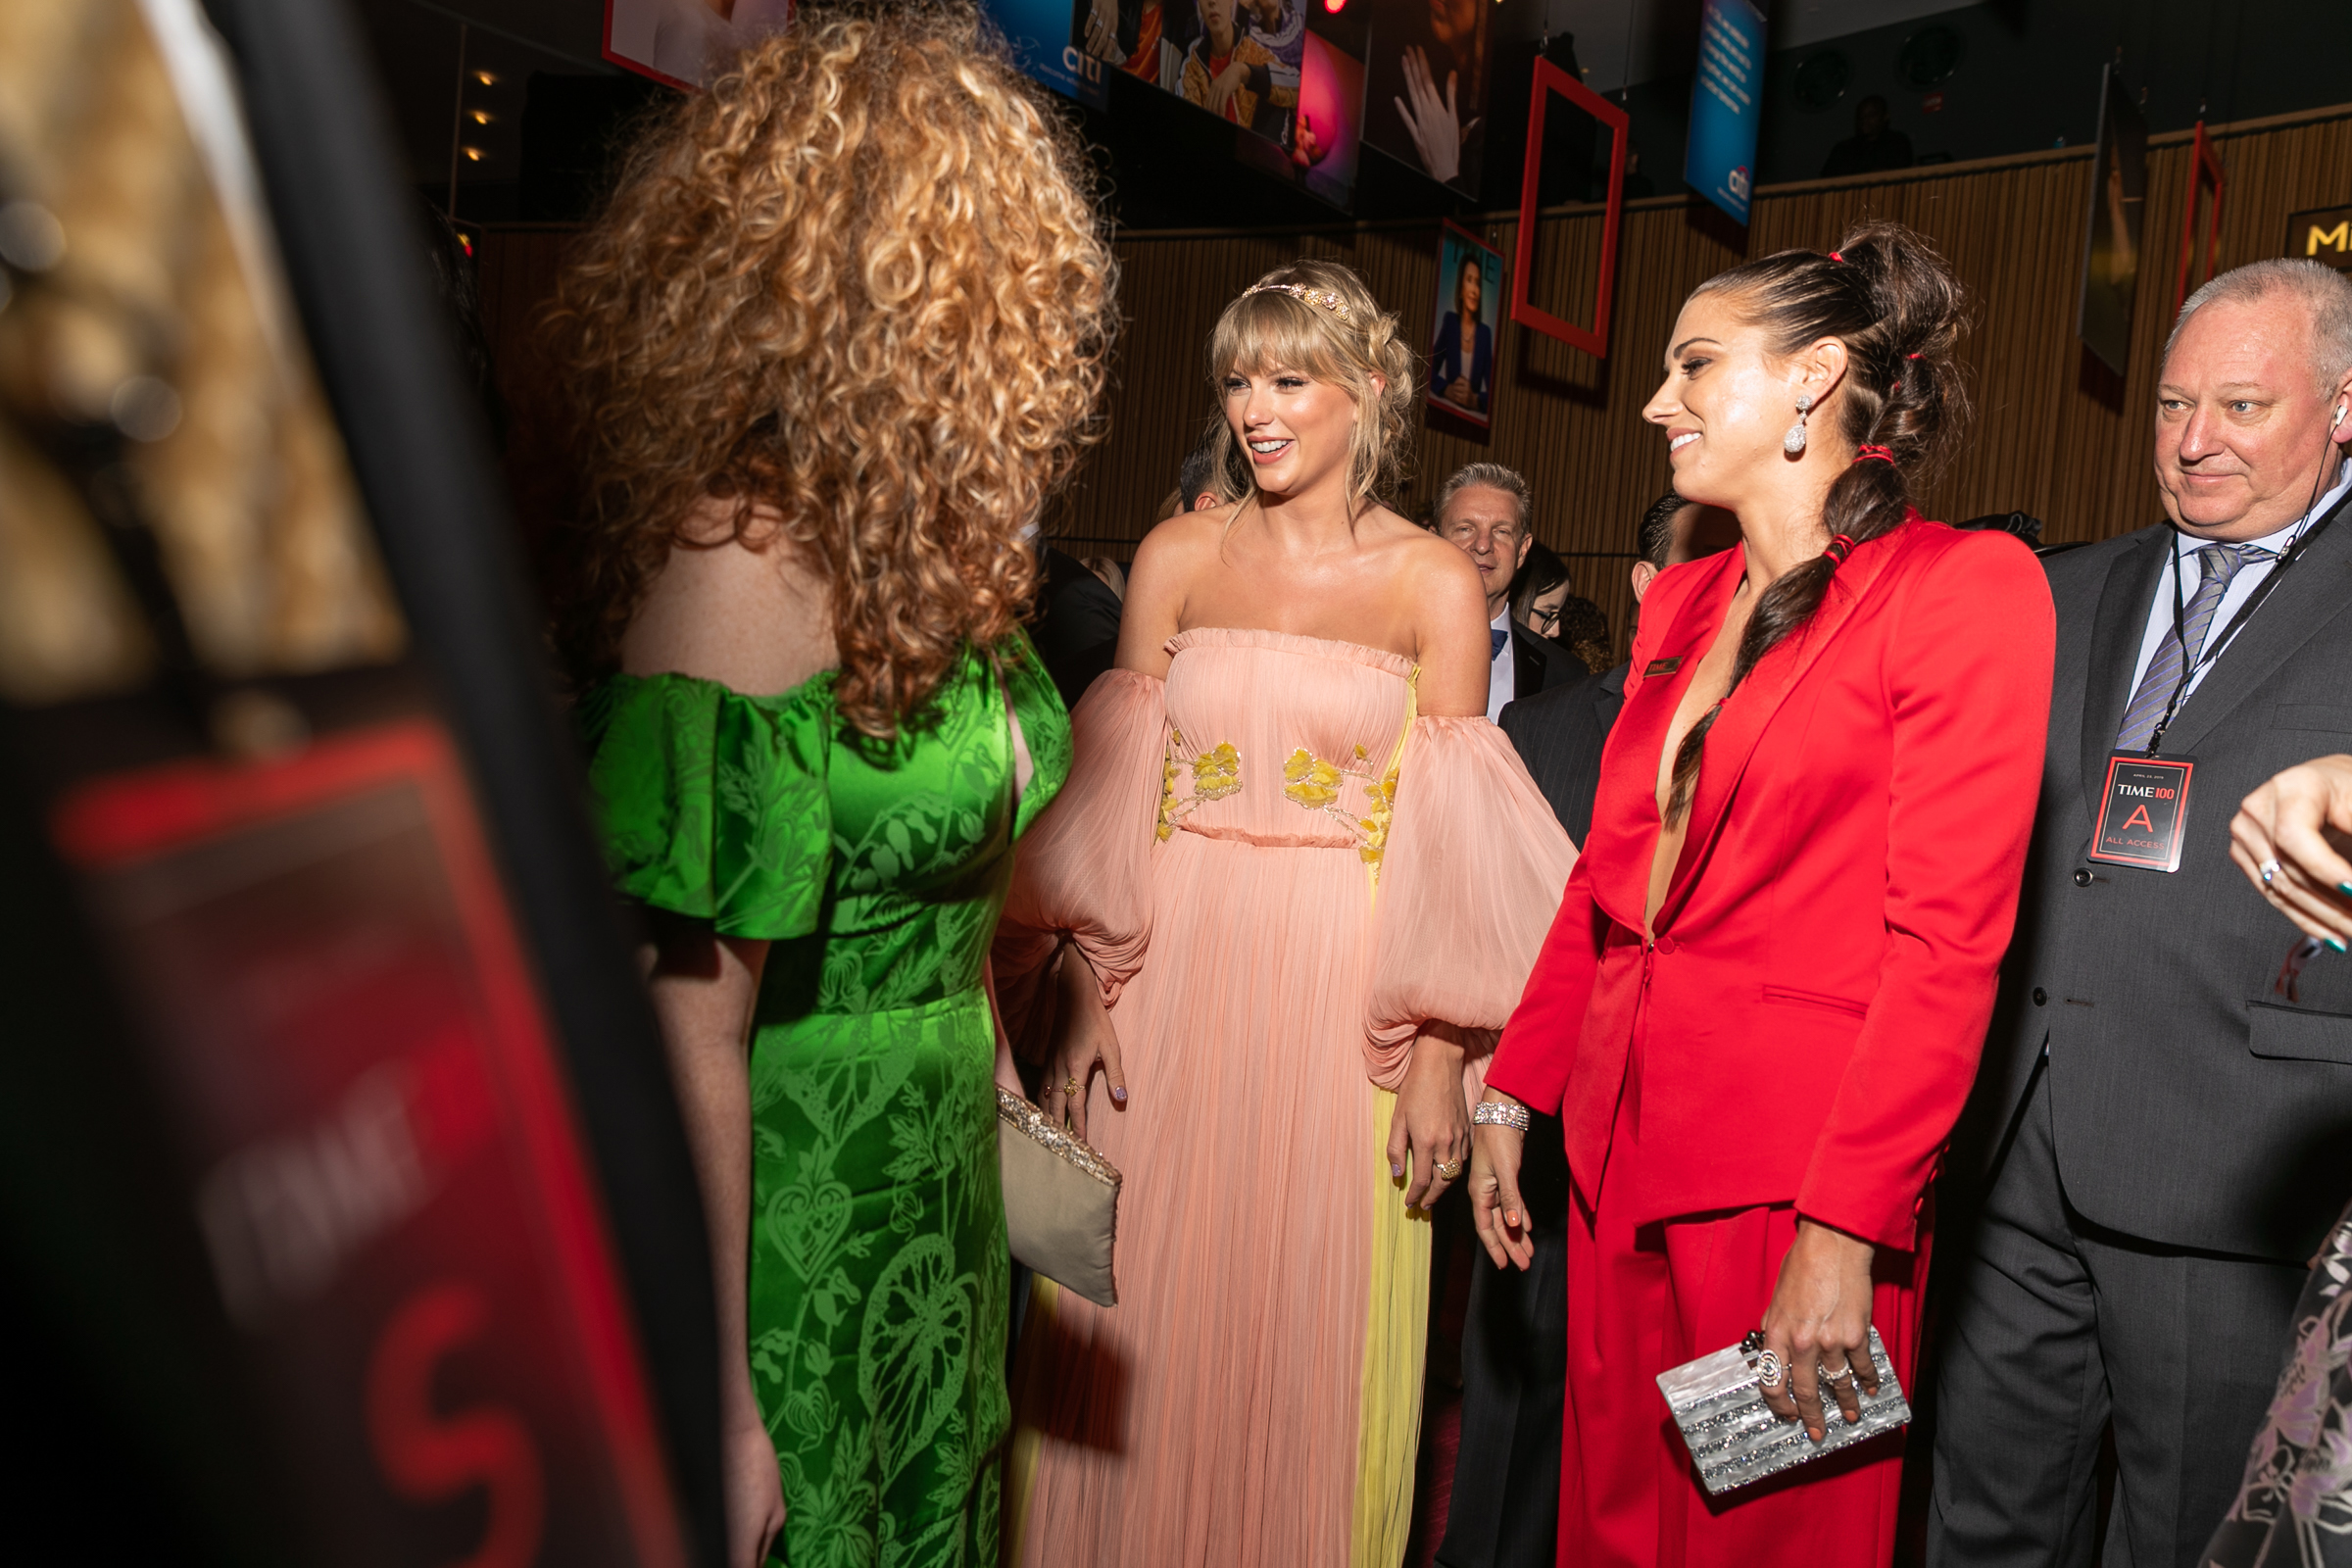 Taylor Swift and Alex Morgan at the Time 100 Gala at Jazz at Lincoln Center in New York City on April 23, 2019.